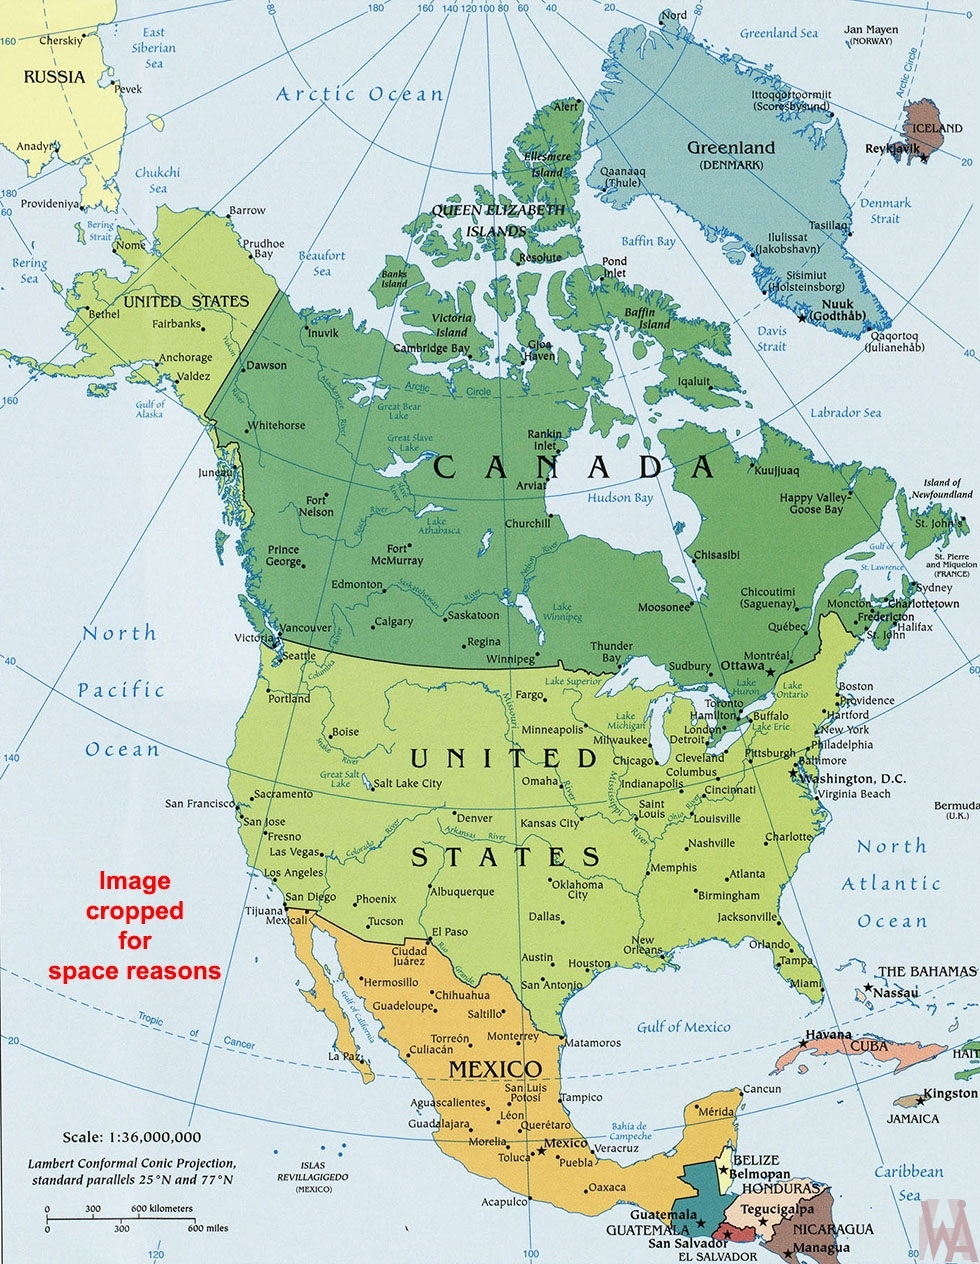 north america political wall map | WhatsAnswer